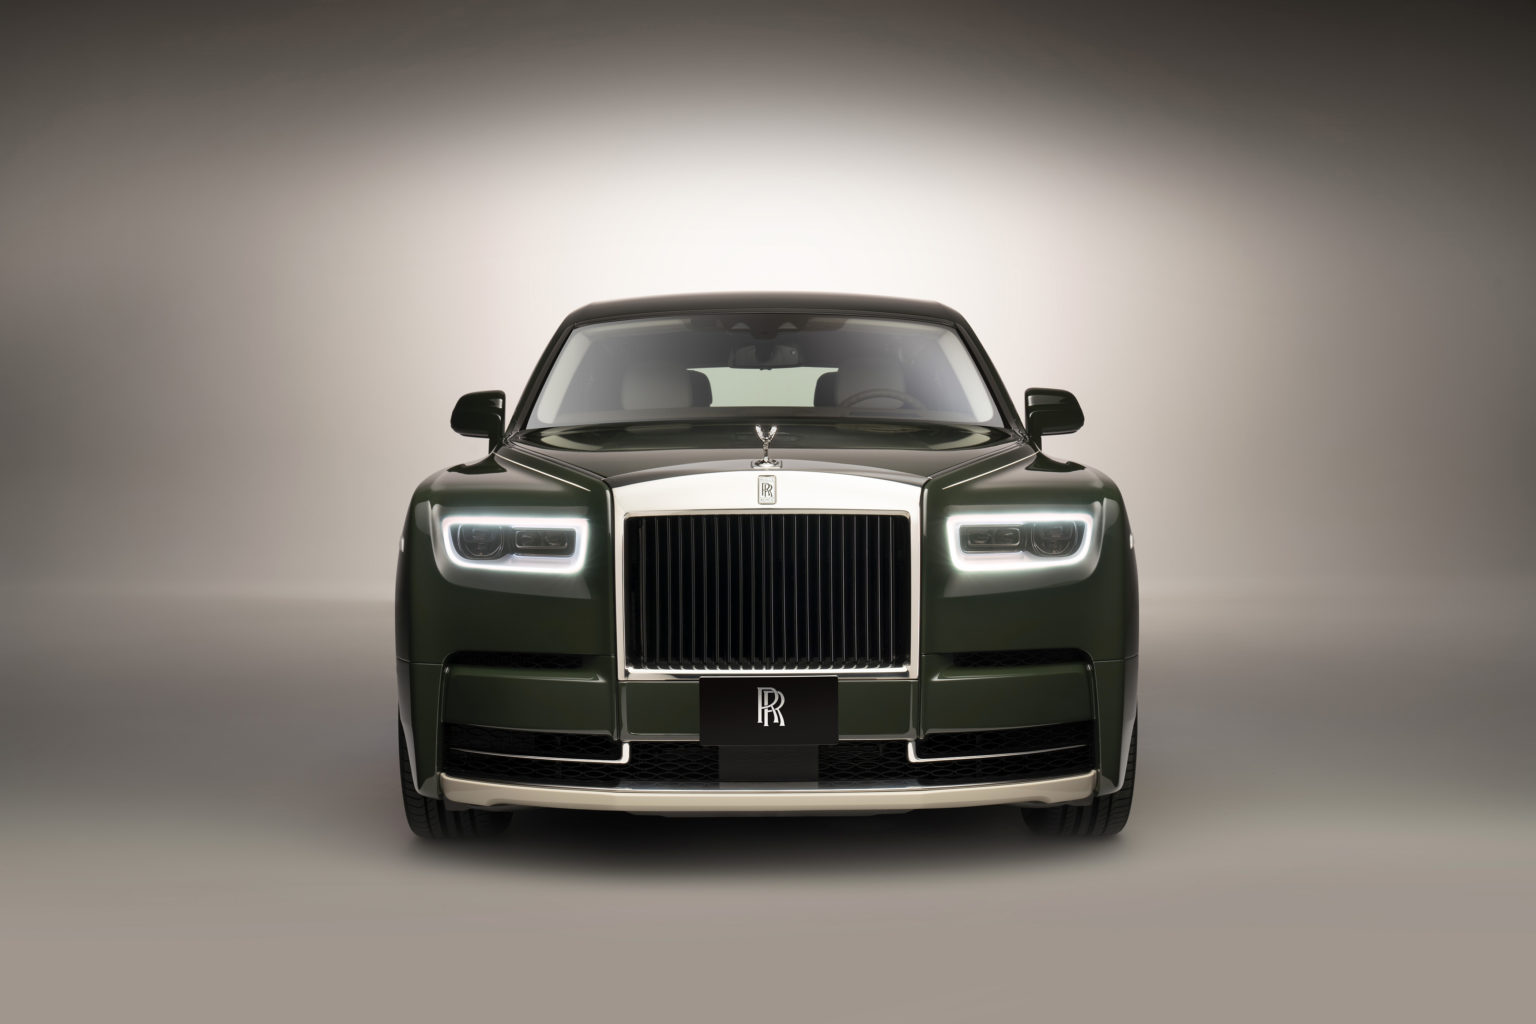 Rolls-RoycePhantomOribeincollaborationwithHerme_sfront-1536x1024.jpeg